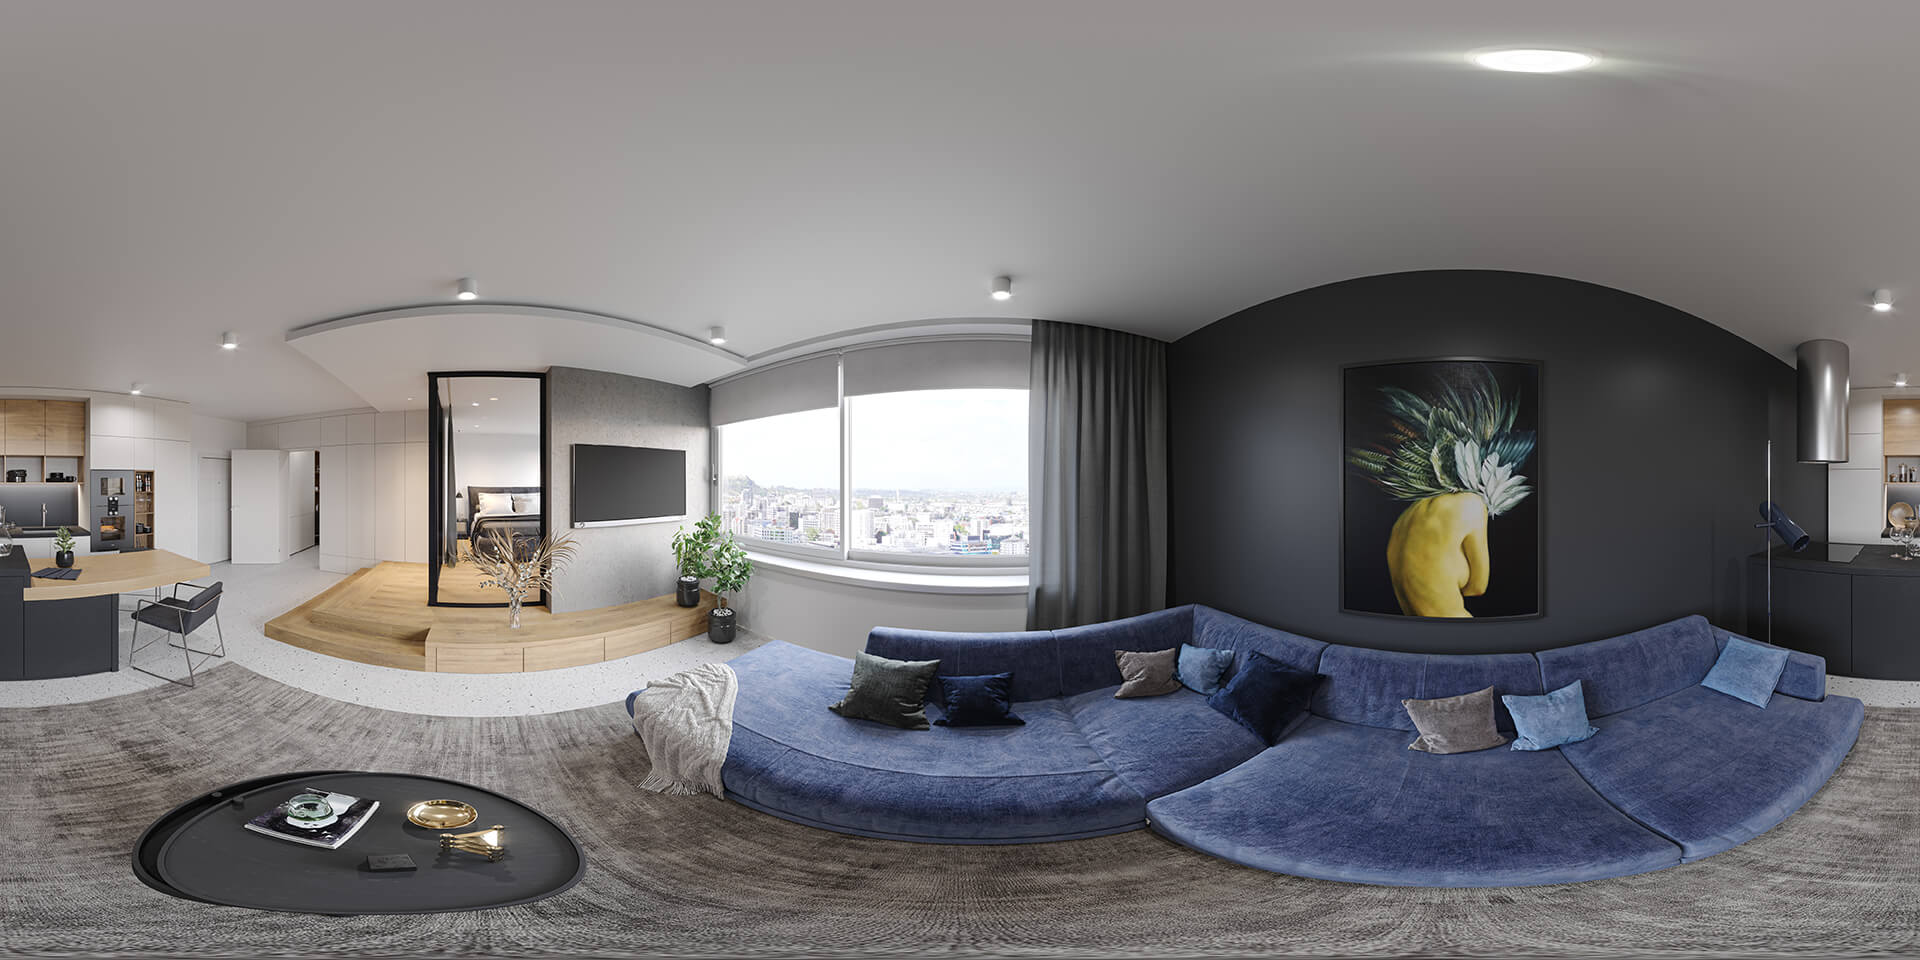 Panoramic 3D Render of an Apartment with Color Correction